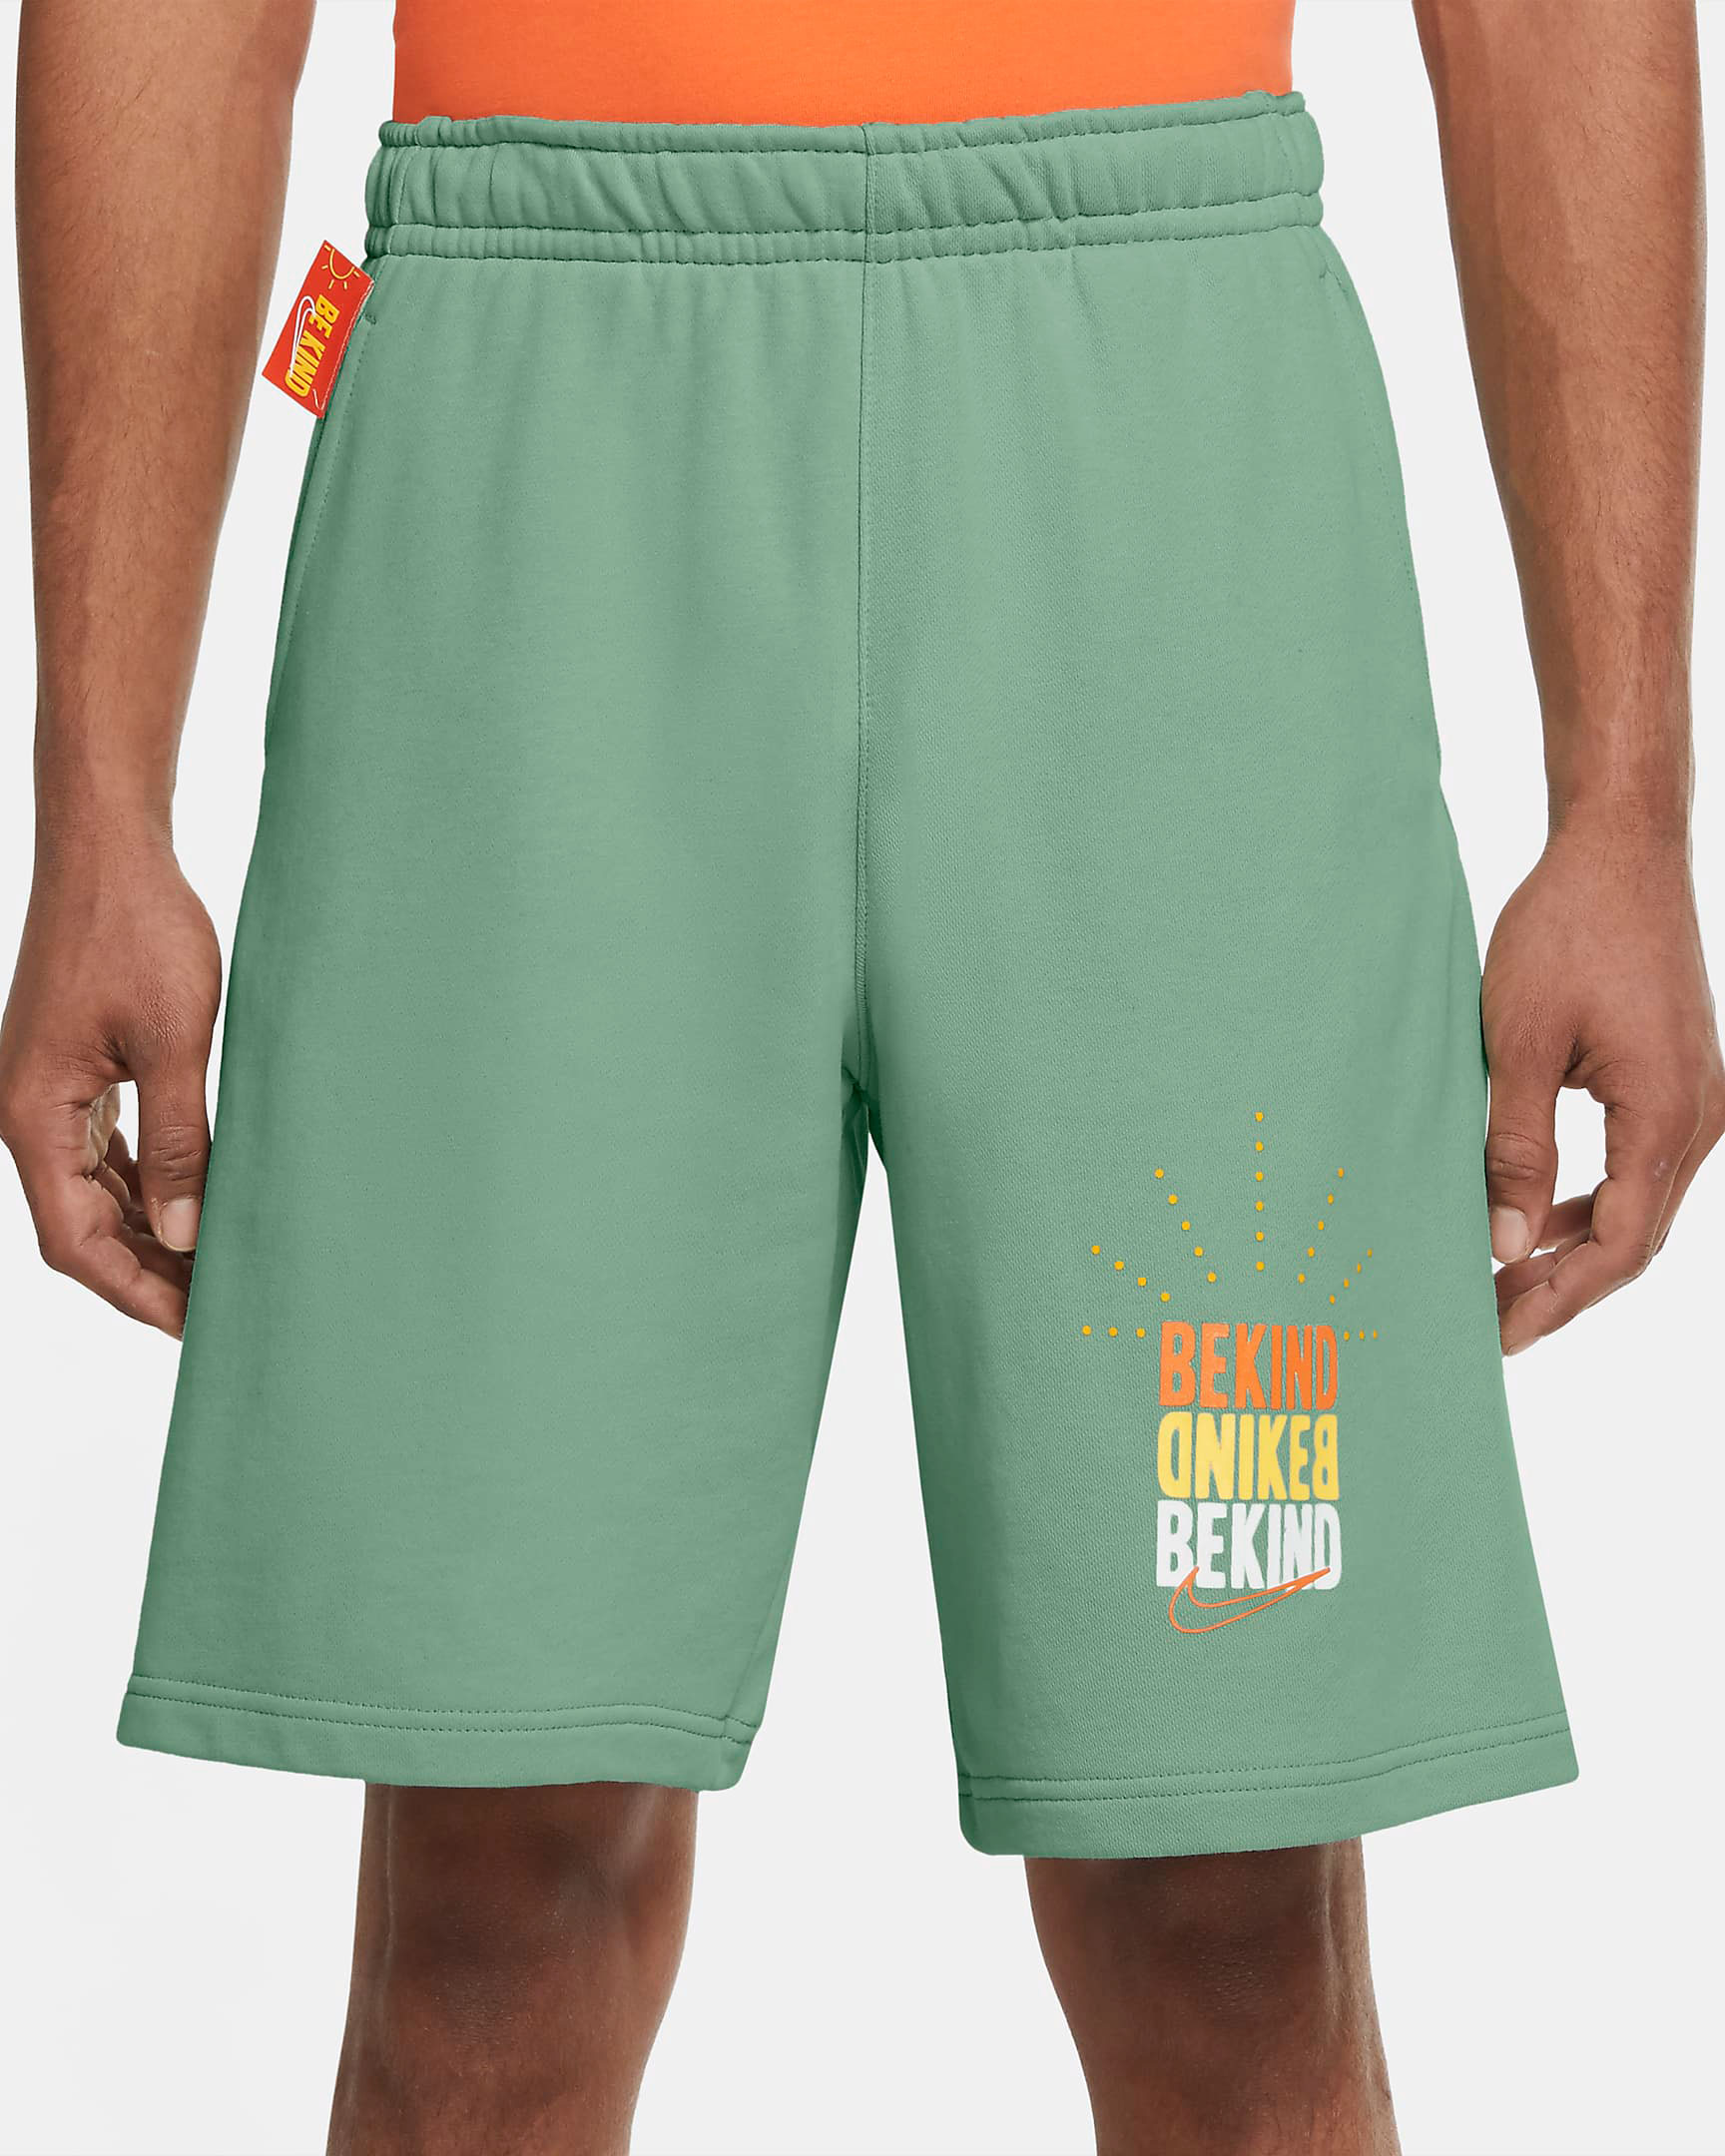 nike-sportswear-be-kind-green-orange-shorts-1